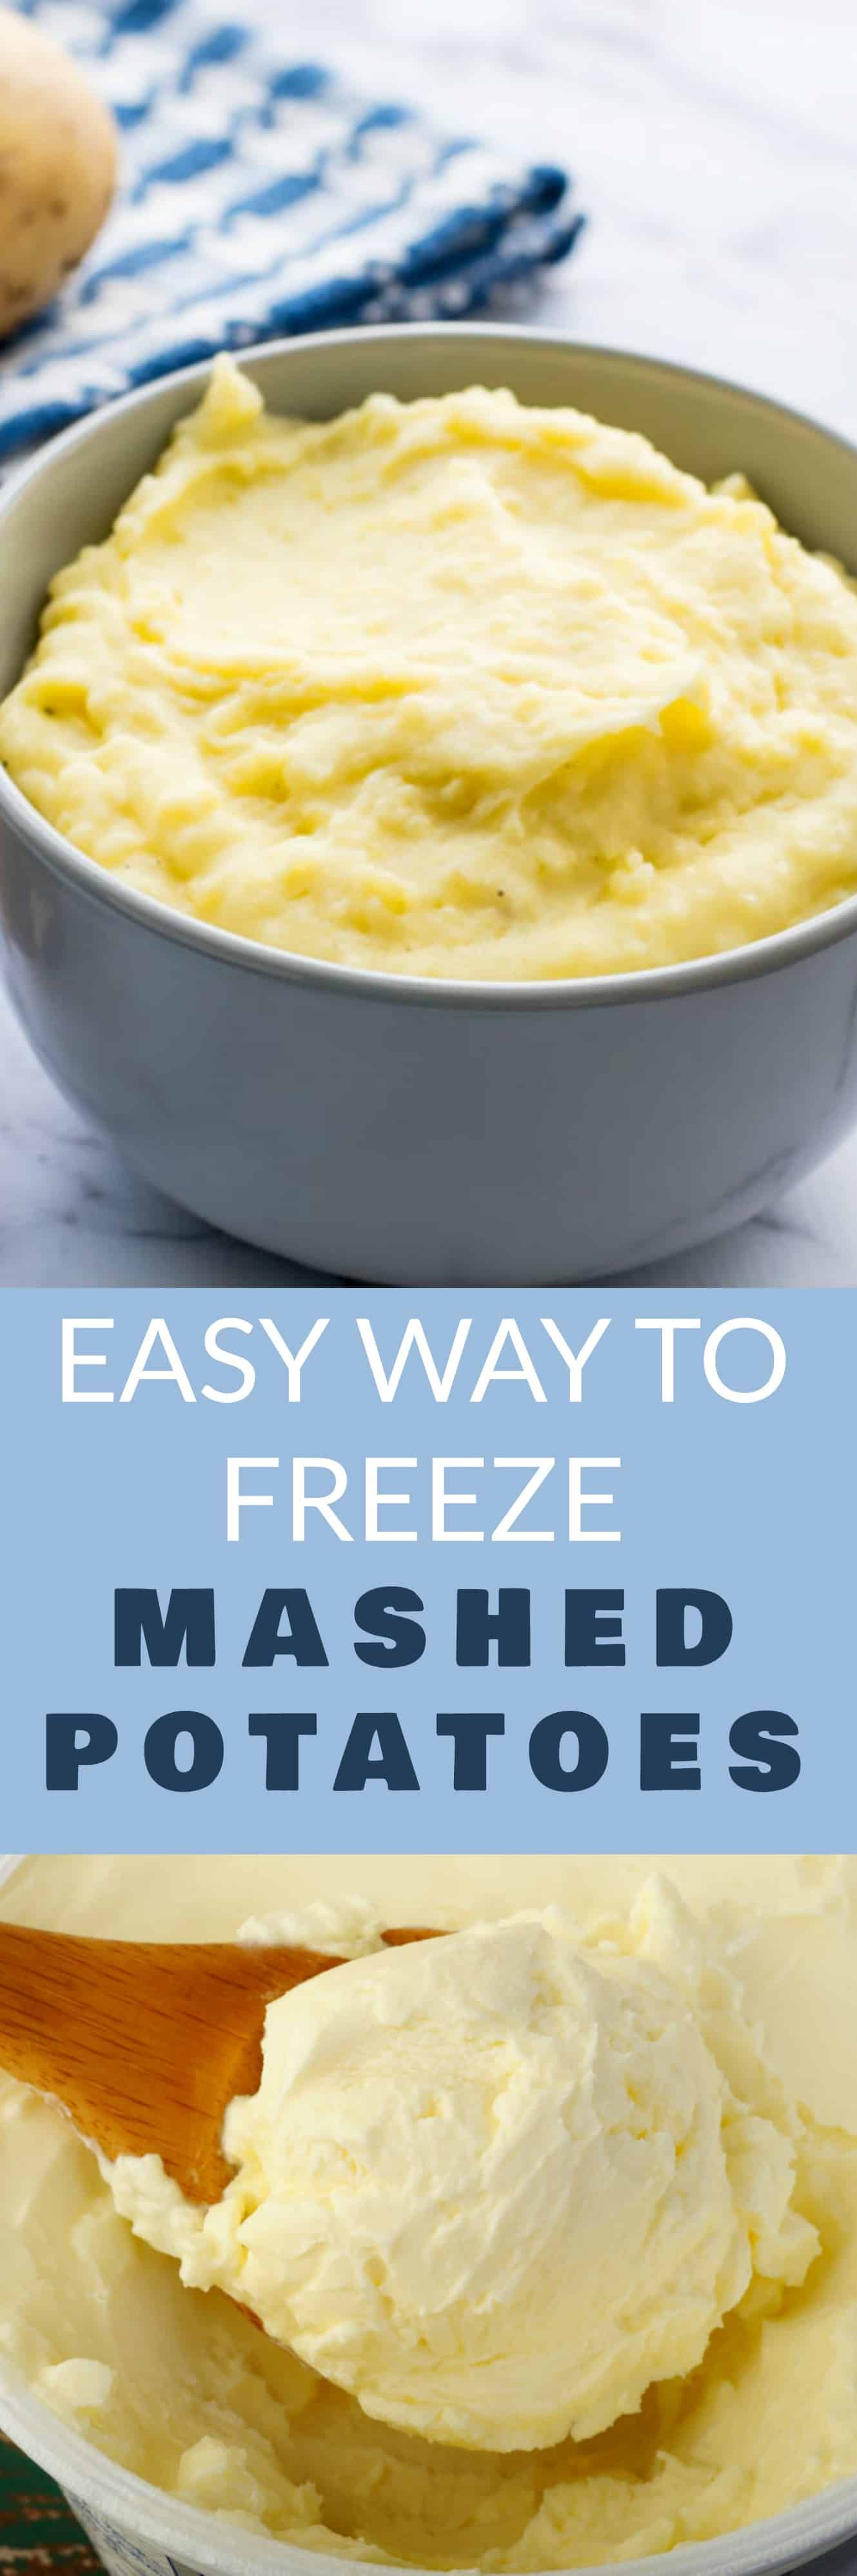 Can You Freeze Mashed Potatoes  Easy Way to Freeze Mashed Potatoes Brooklyn Farm Girl